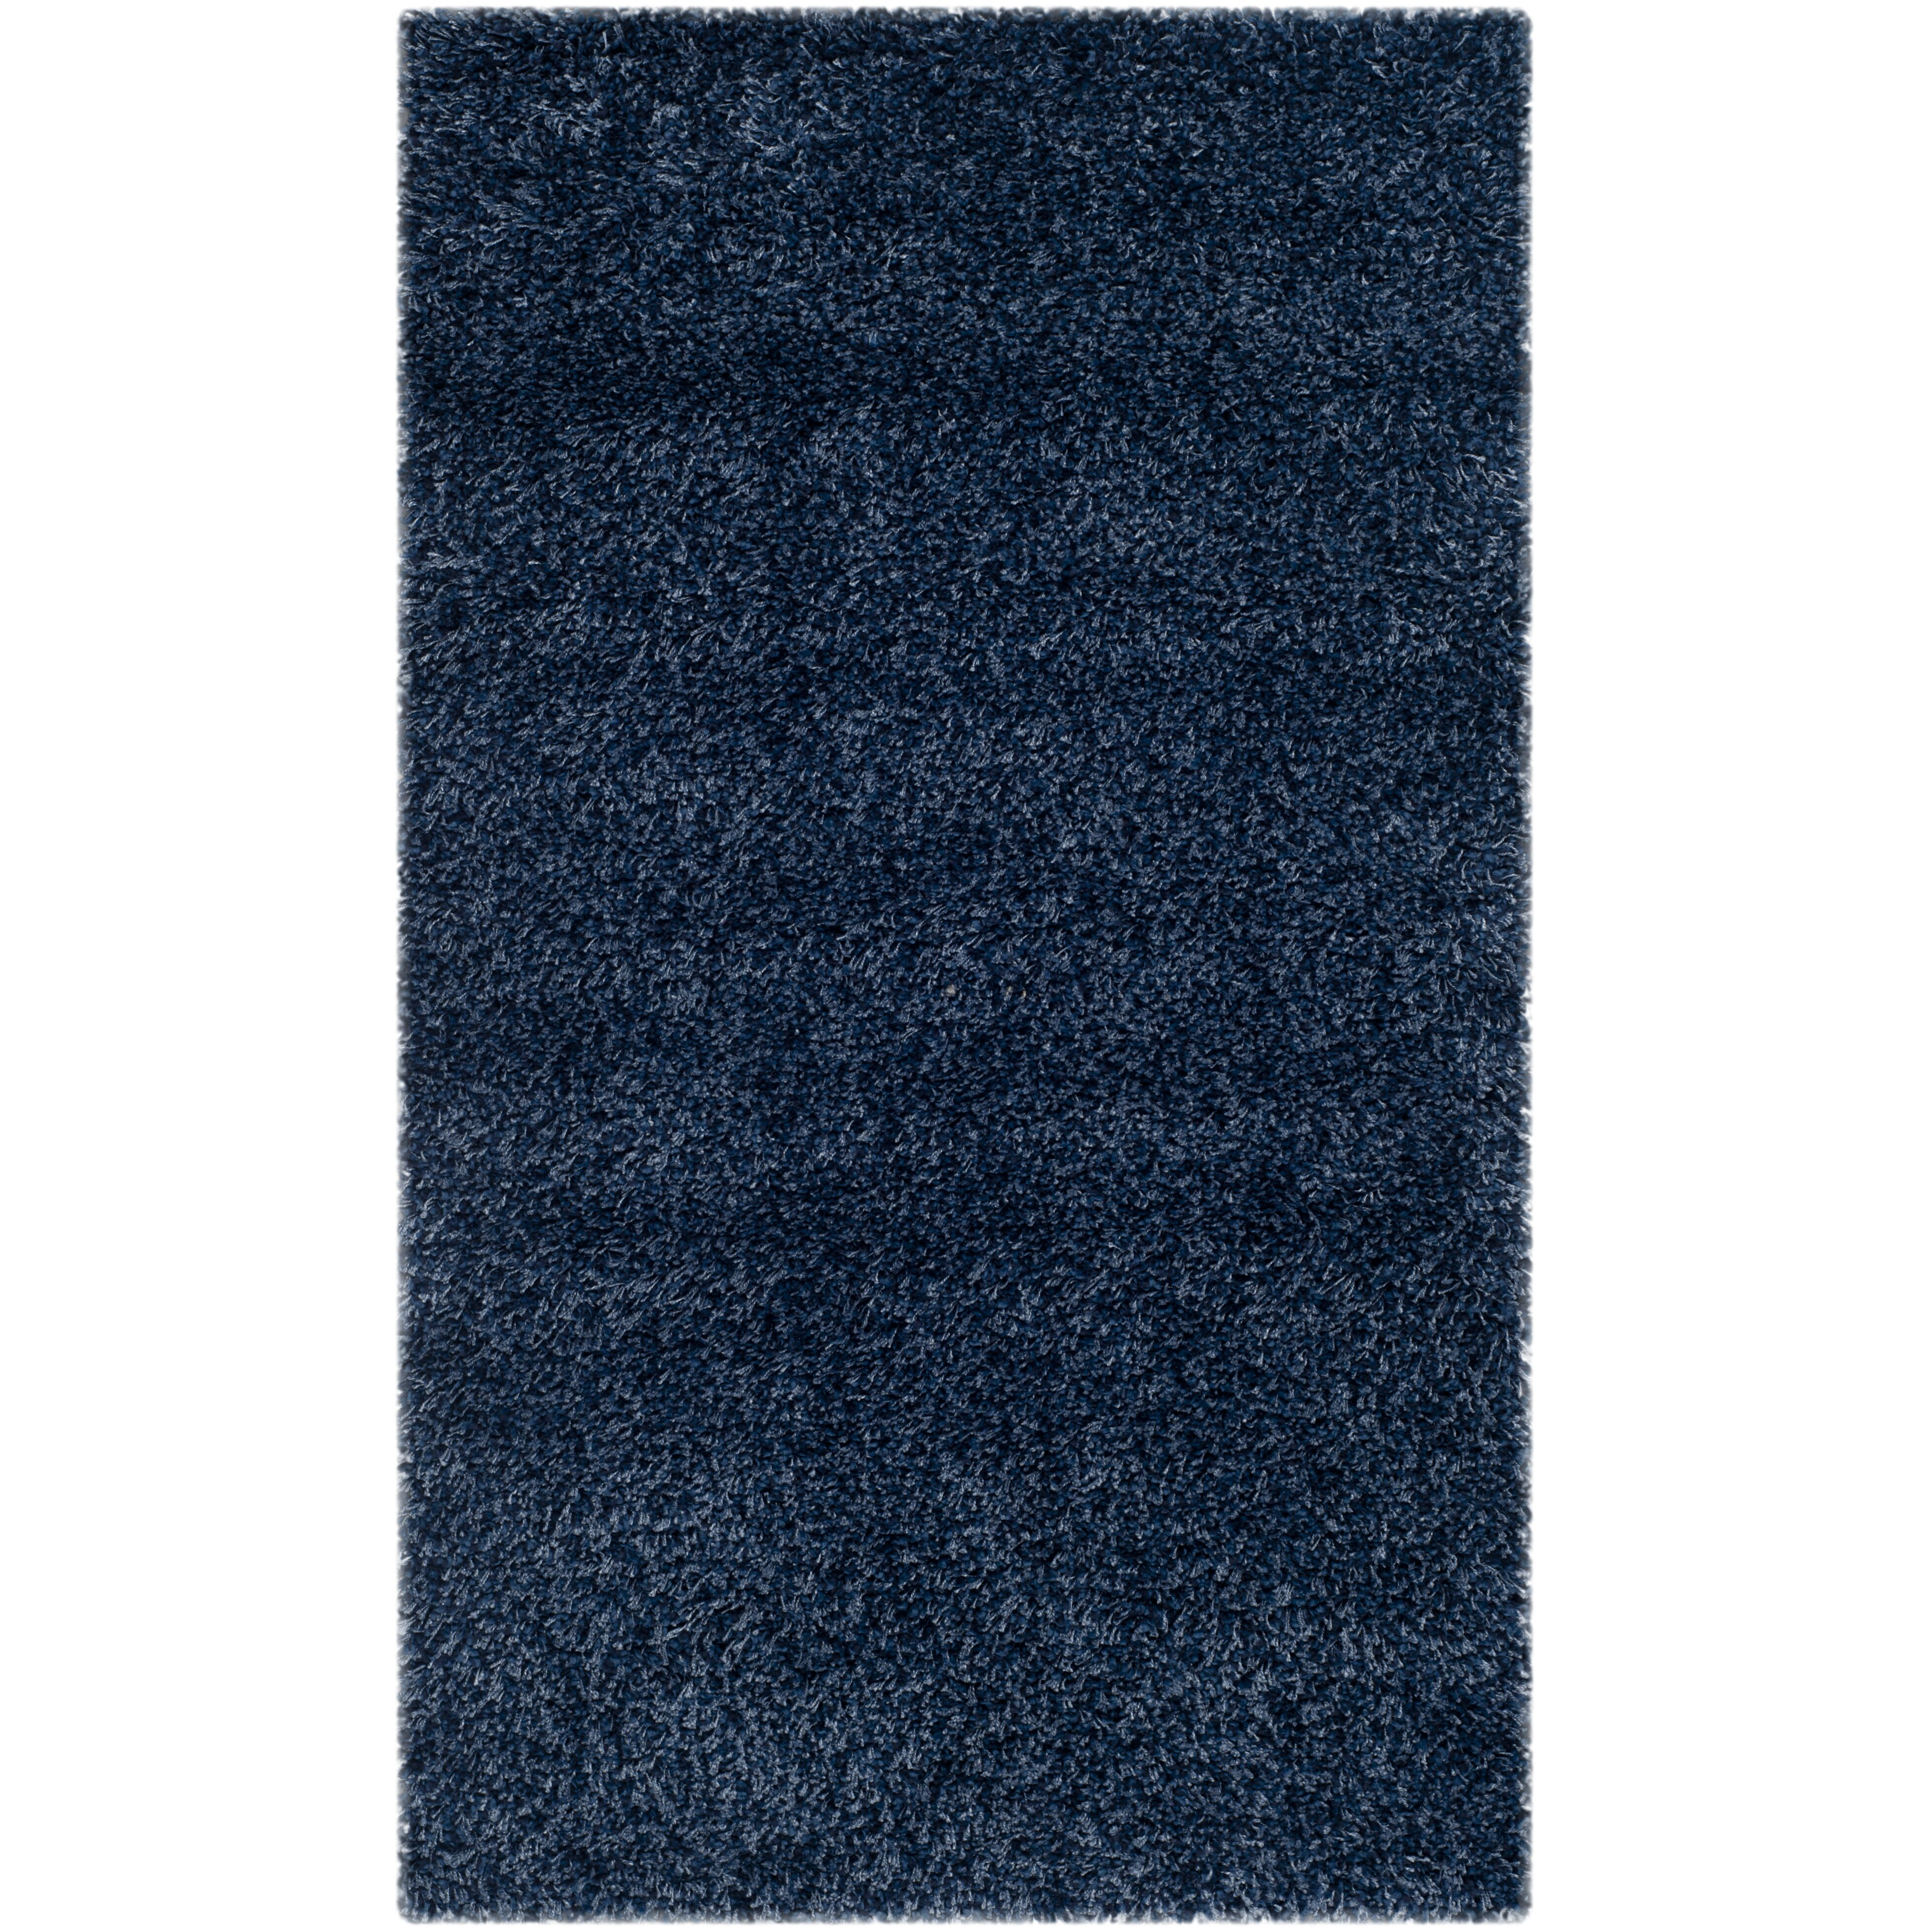 Safavieh Shag Navy Blue Solid Rug Amp Reviews Wayfair